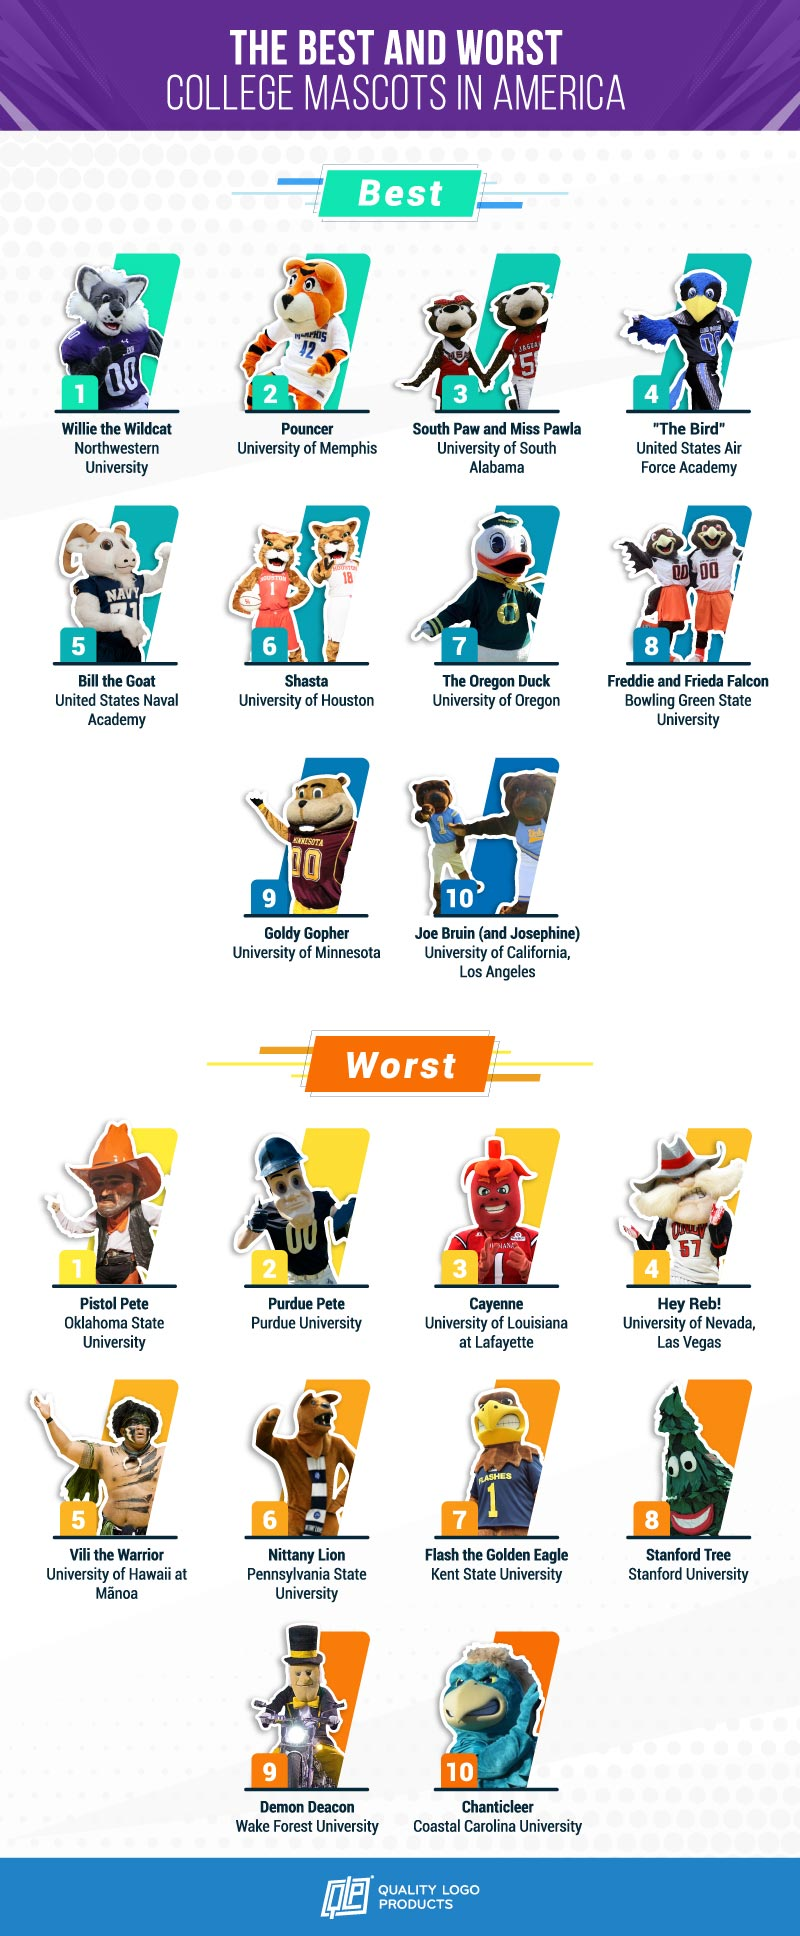 The Best and Worst College Mascots in America